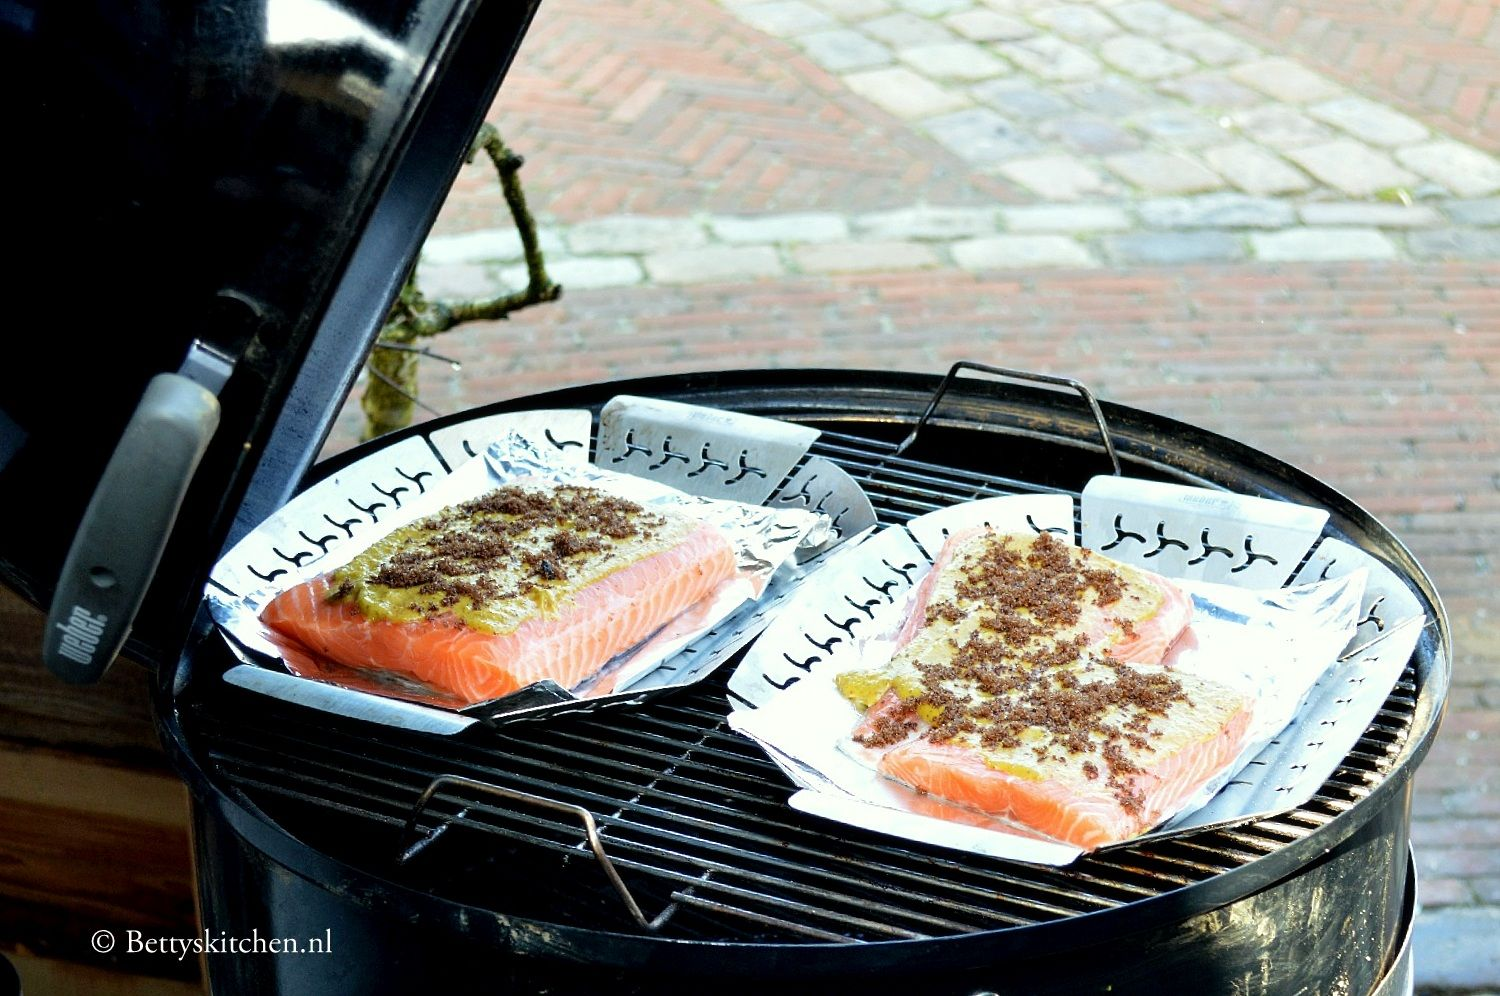 Hele Schol van de Barbecue | Betty's Kitchen Foodblog